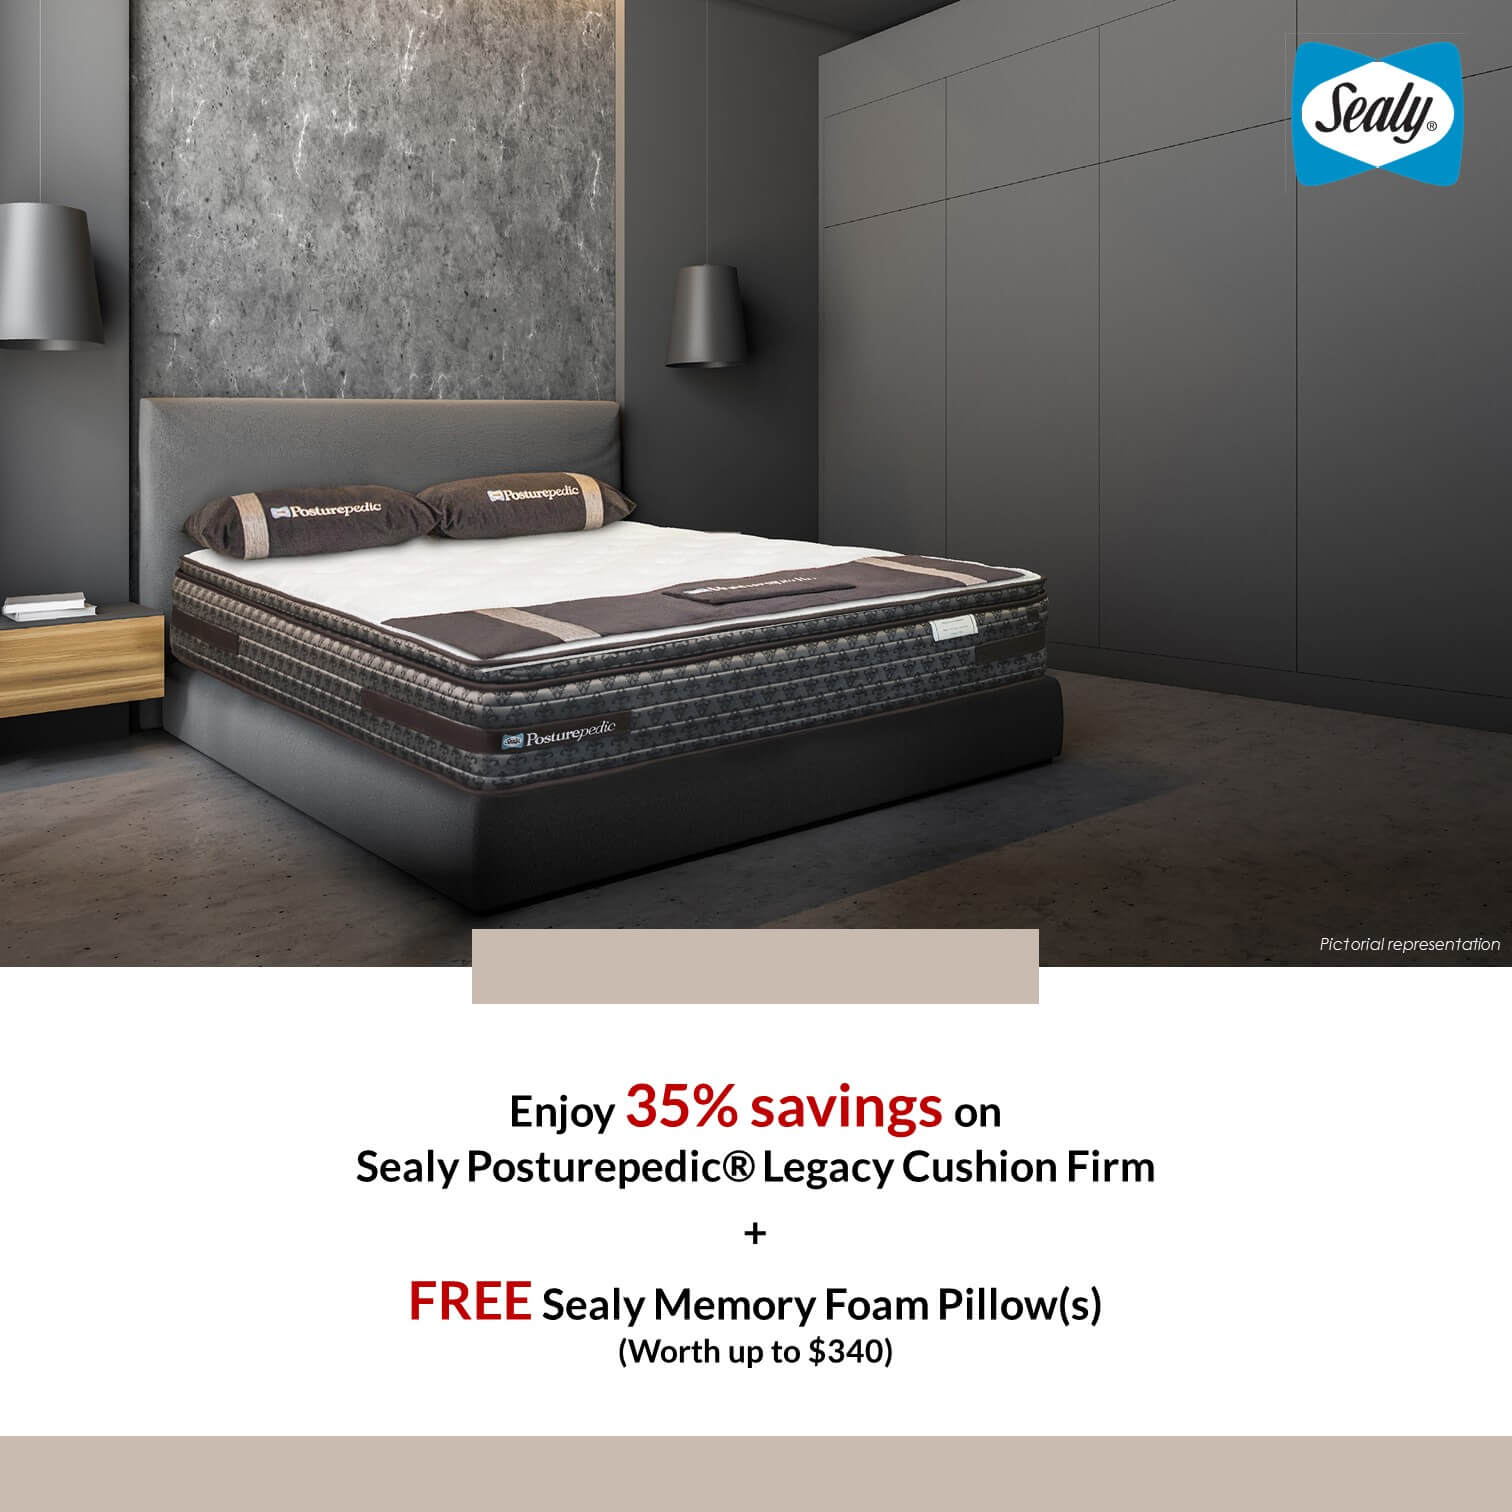 21 Aug 2020 Onwards: Sealy Free Sealy Memory Foam Pillow Promotion